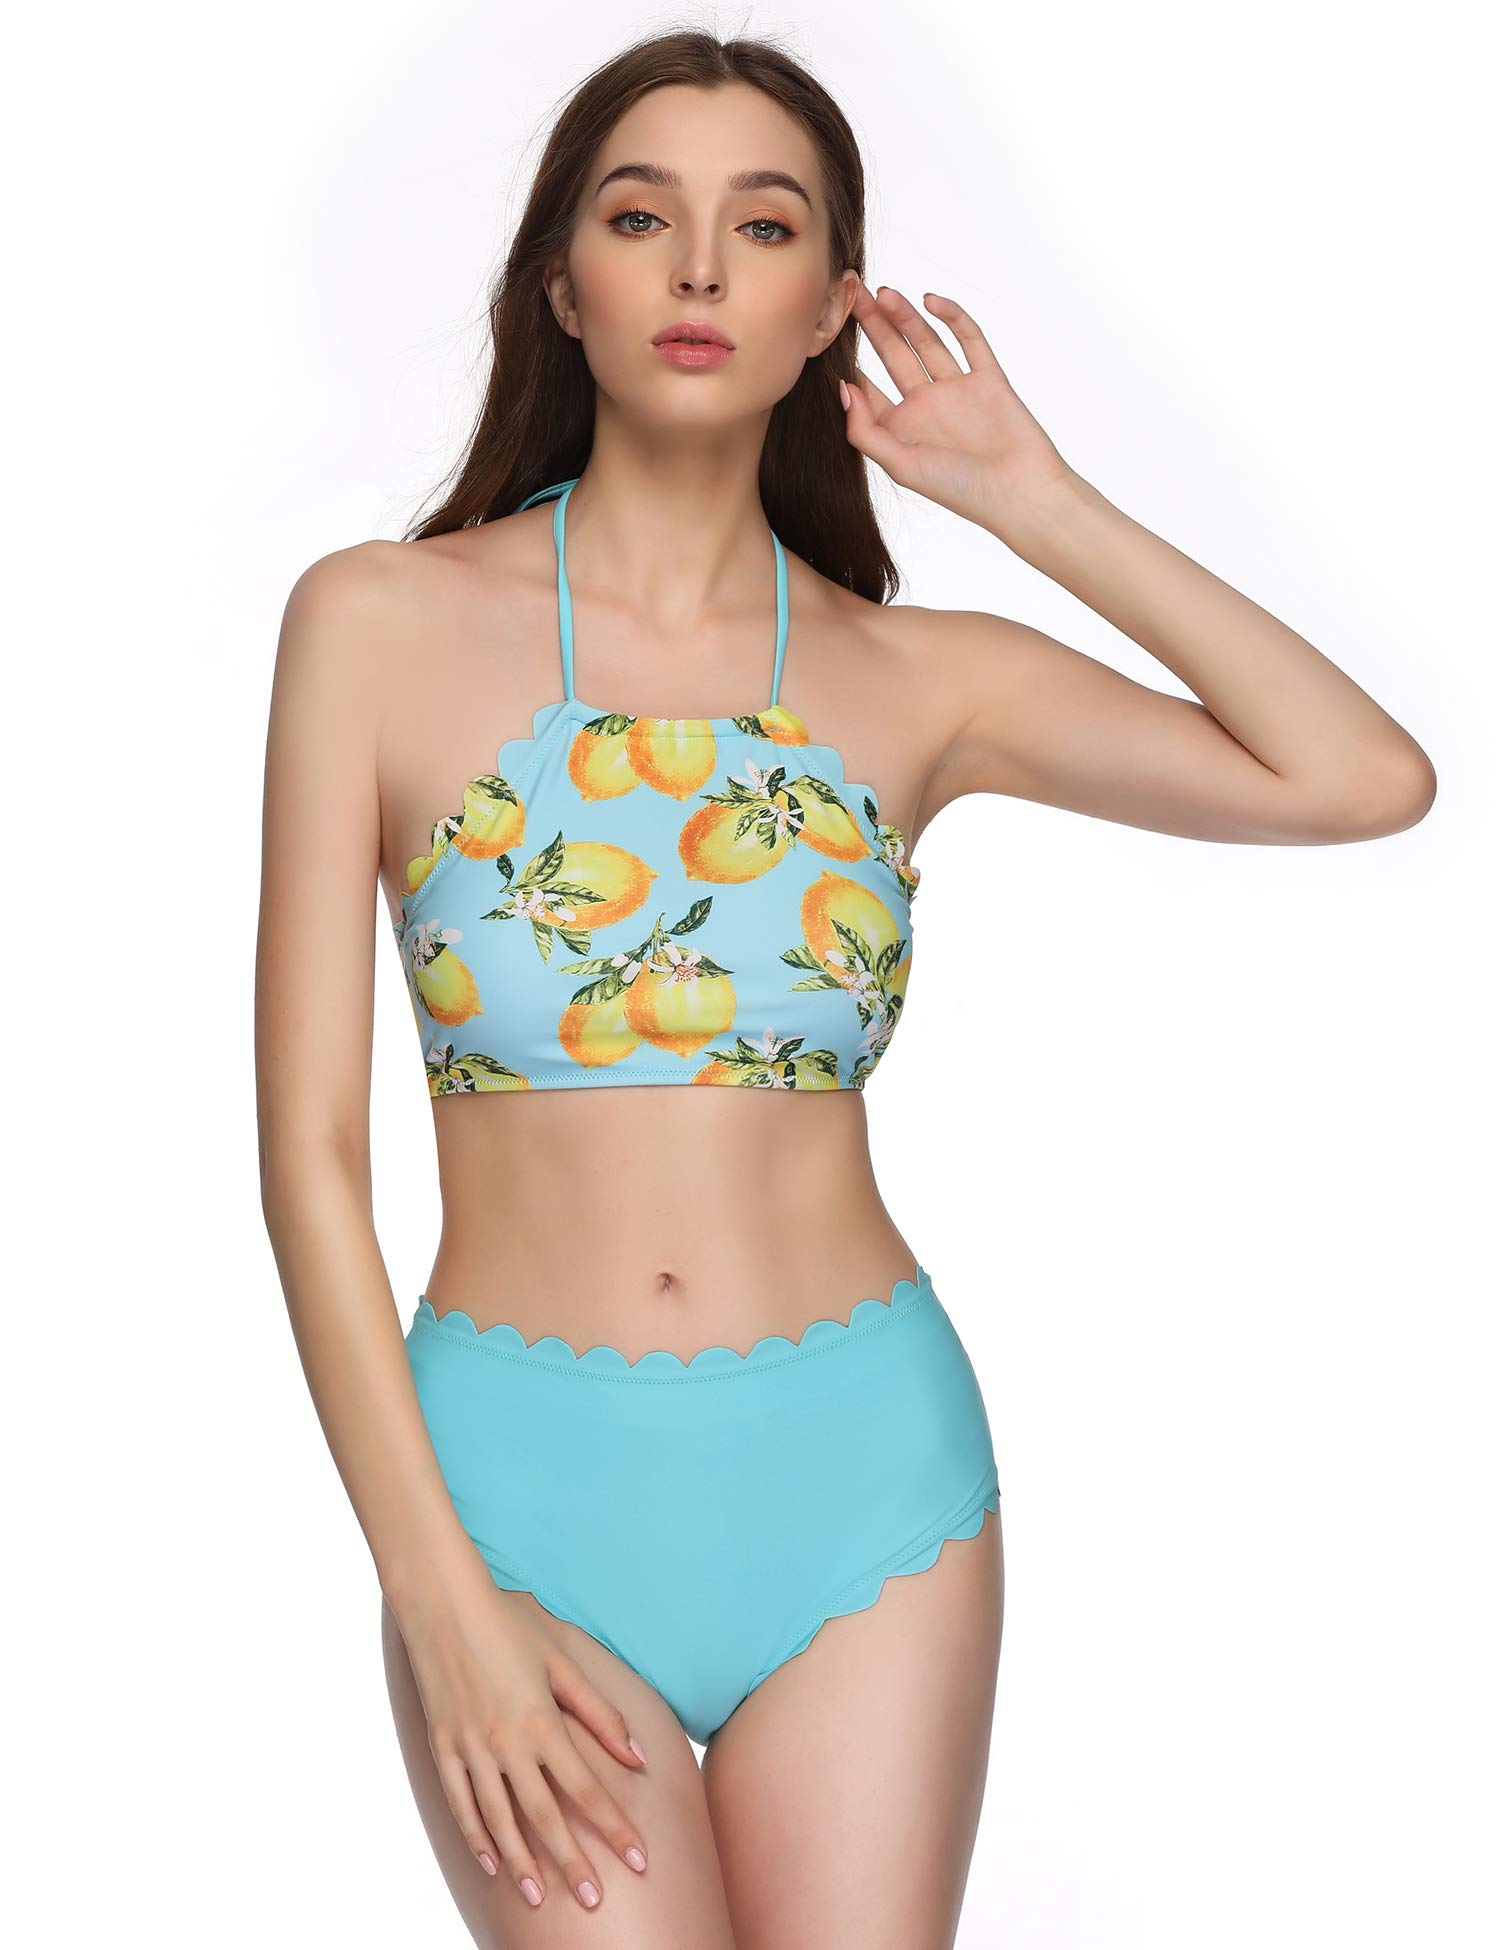 Verano Playa Women\'s Swimsuits High Neck Halter Bathing Suits Two Piece Floral Printed Bikini Set with Wave Edge